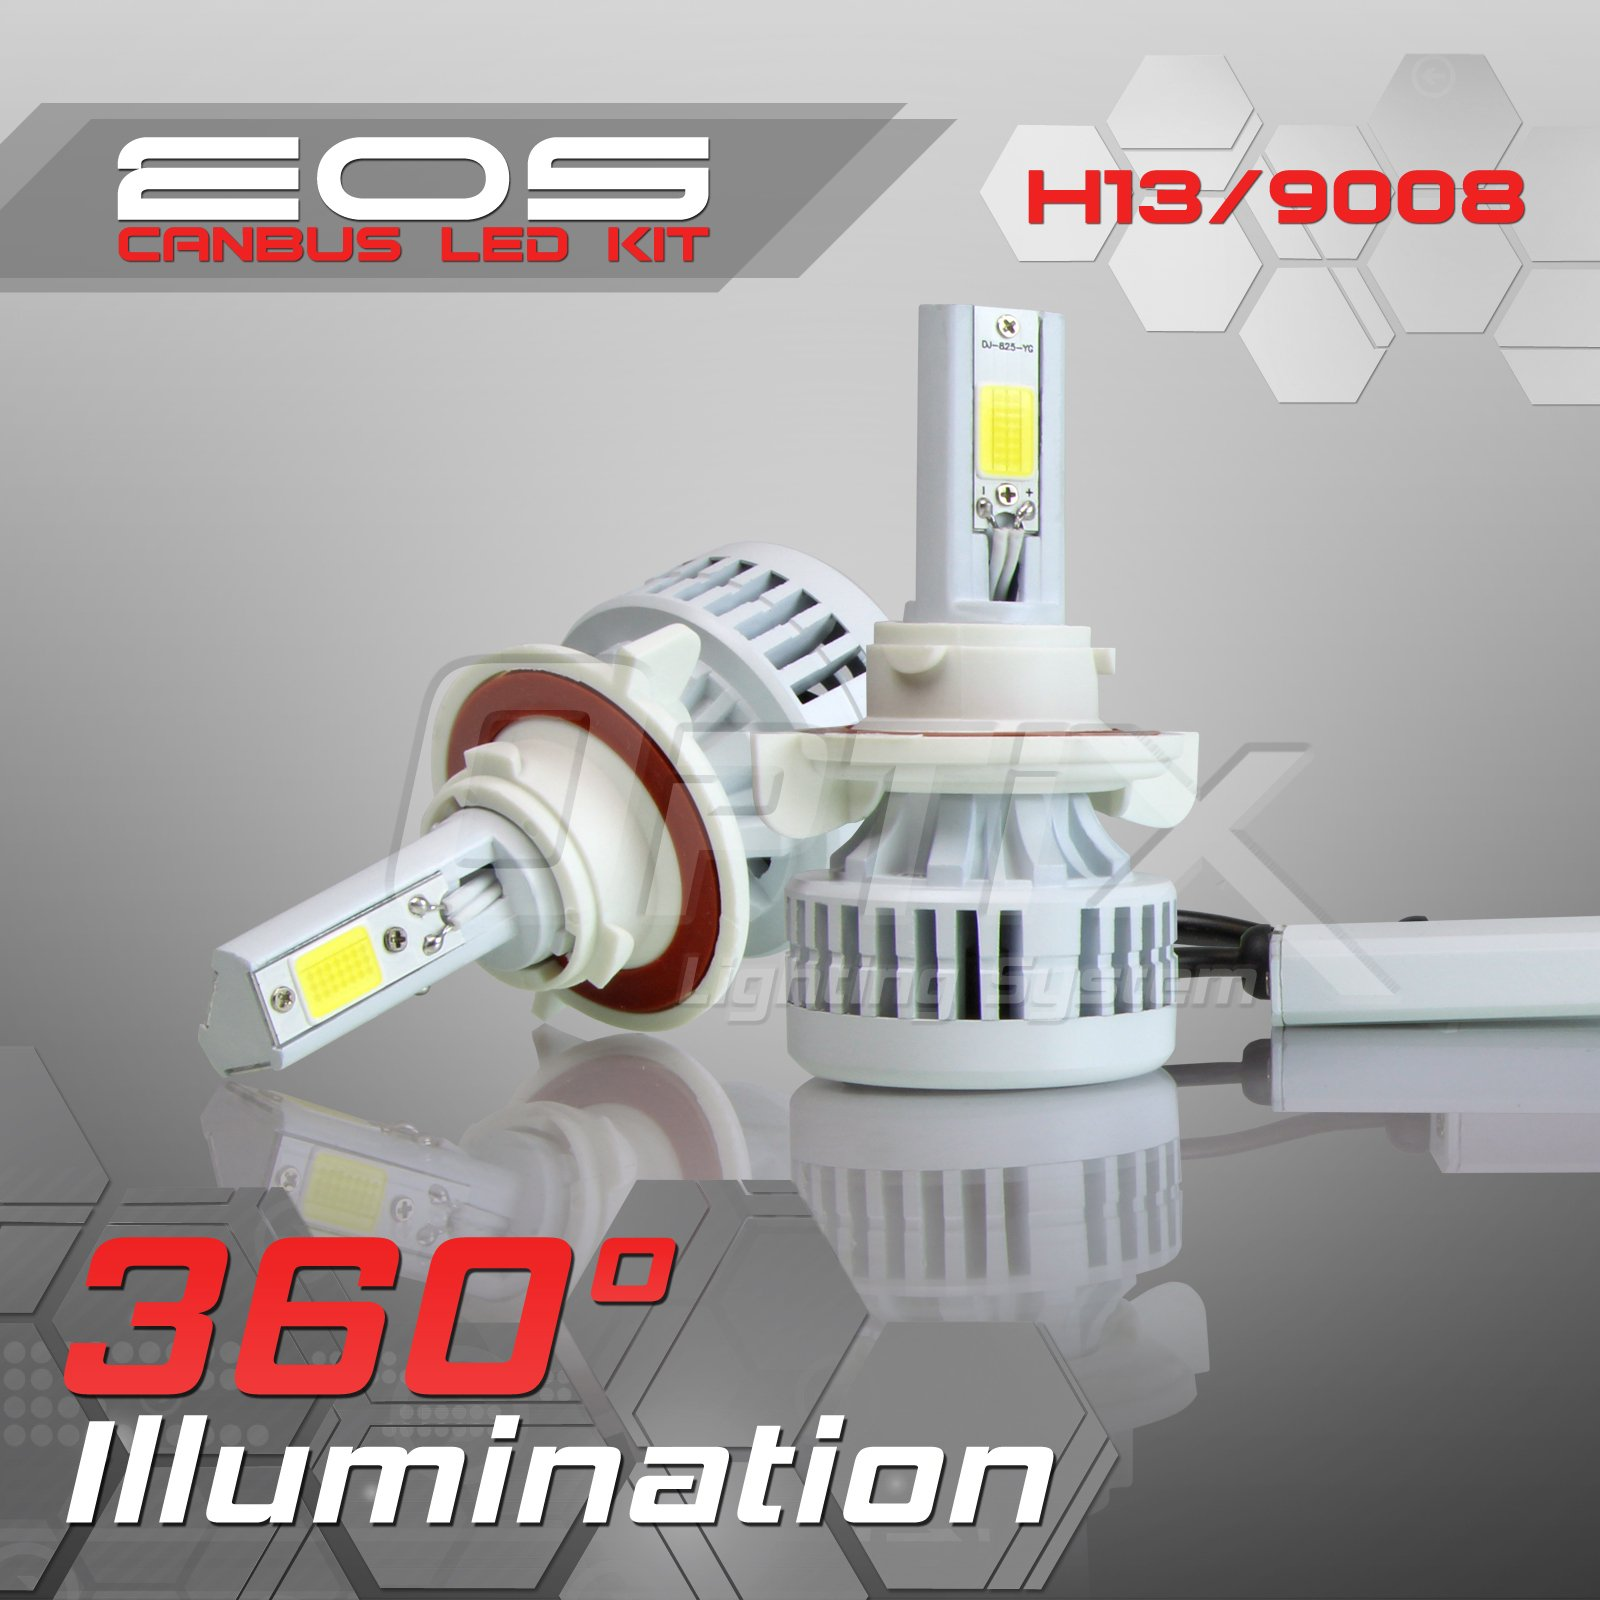 Optix 80W 8000LM LED Headlight Conversion Kit - H13 9008 Dual High/Low Beam Bulbs - 6000K 6K Diamond White - Premium Epistar COB Chip - Canbus Chip Error Free No Flicker Plug and Play Design